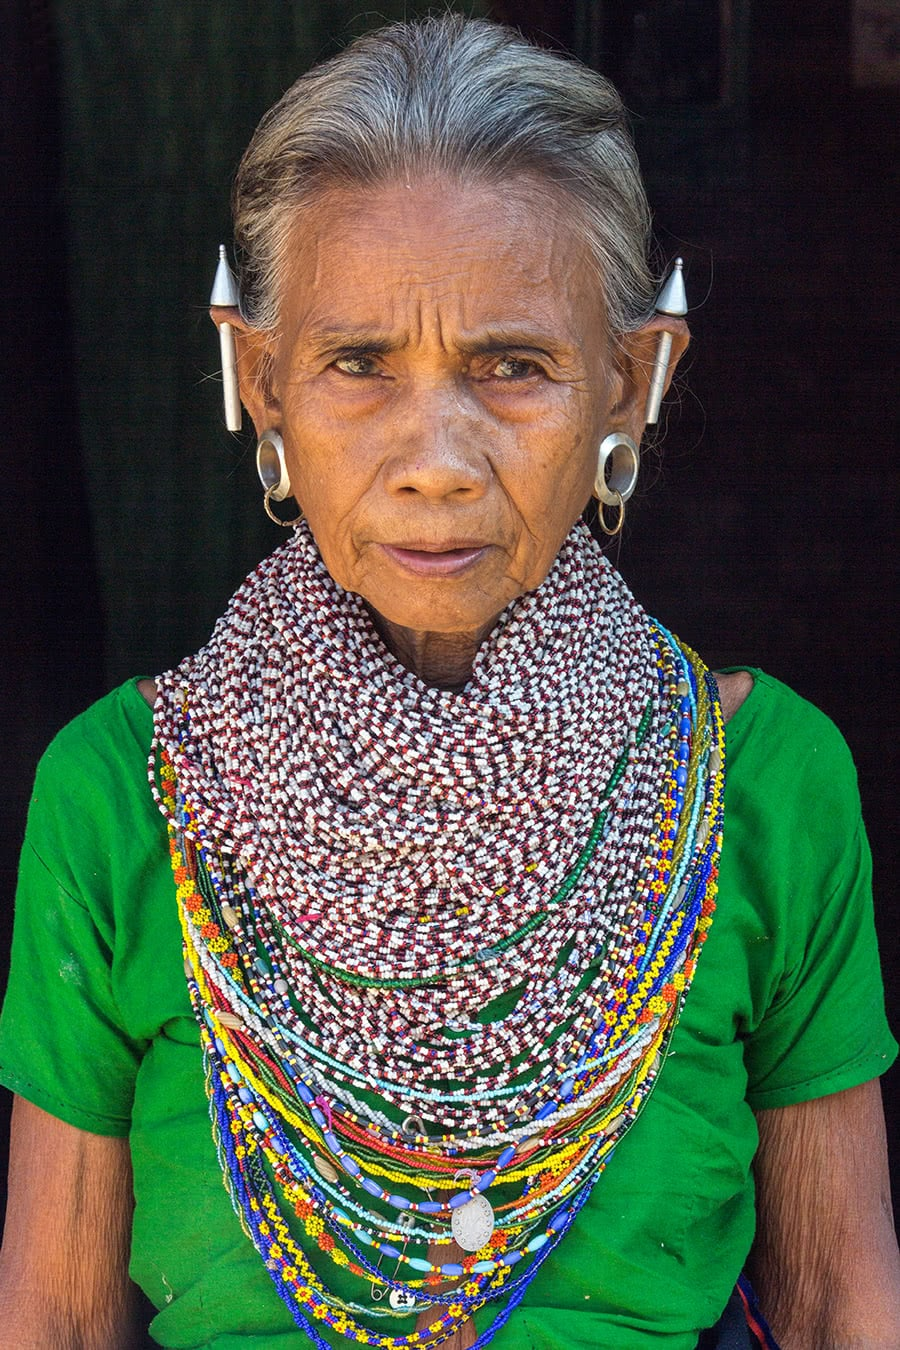 A Tripura tribal woman in Bandarban, in the Chittagong Hill Tracts of Bangladesh.